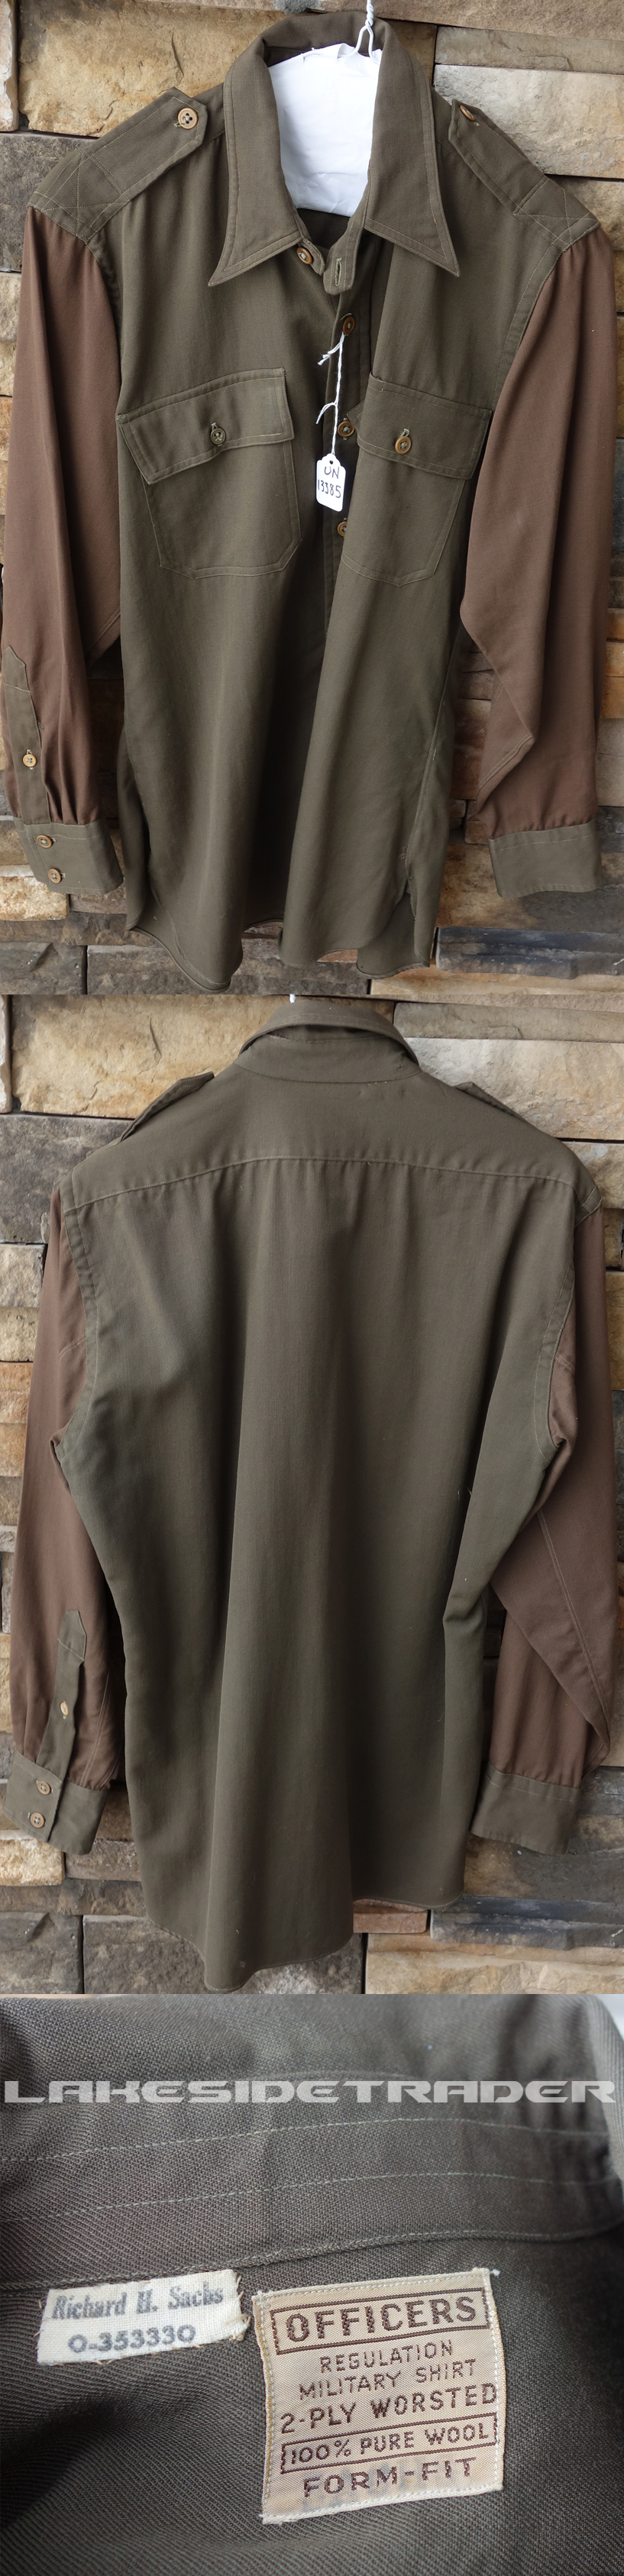 US Army Officer's long sleeve shirt